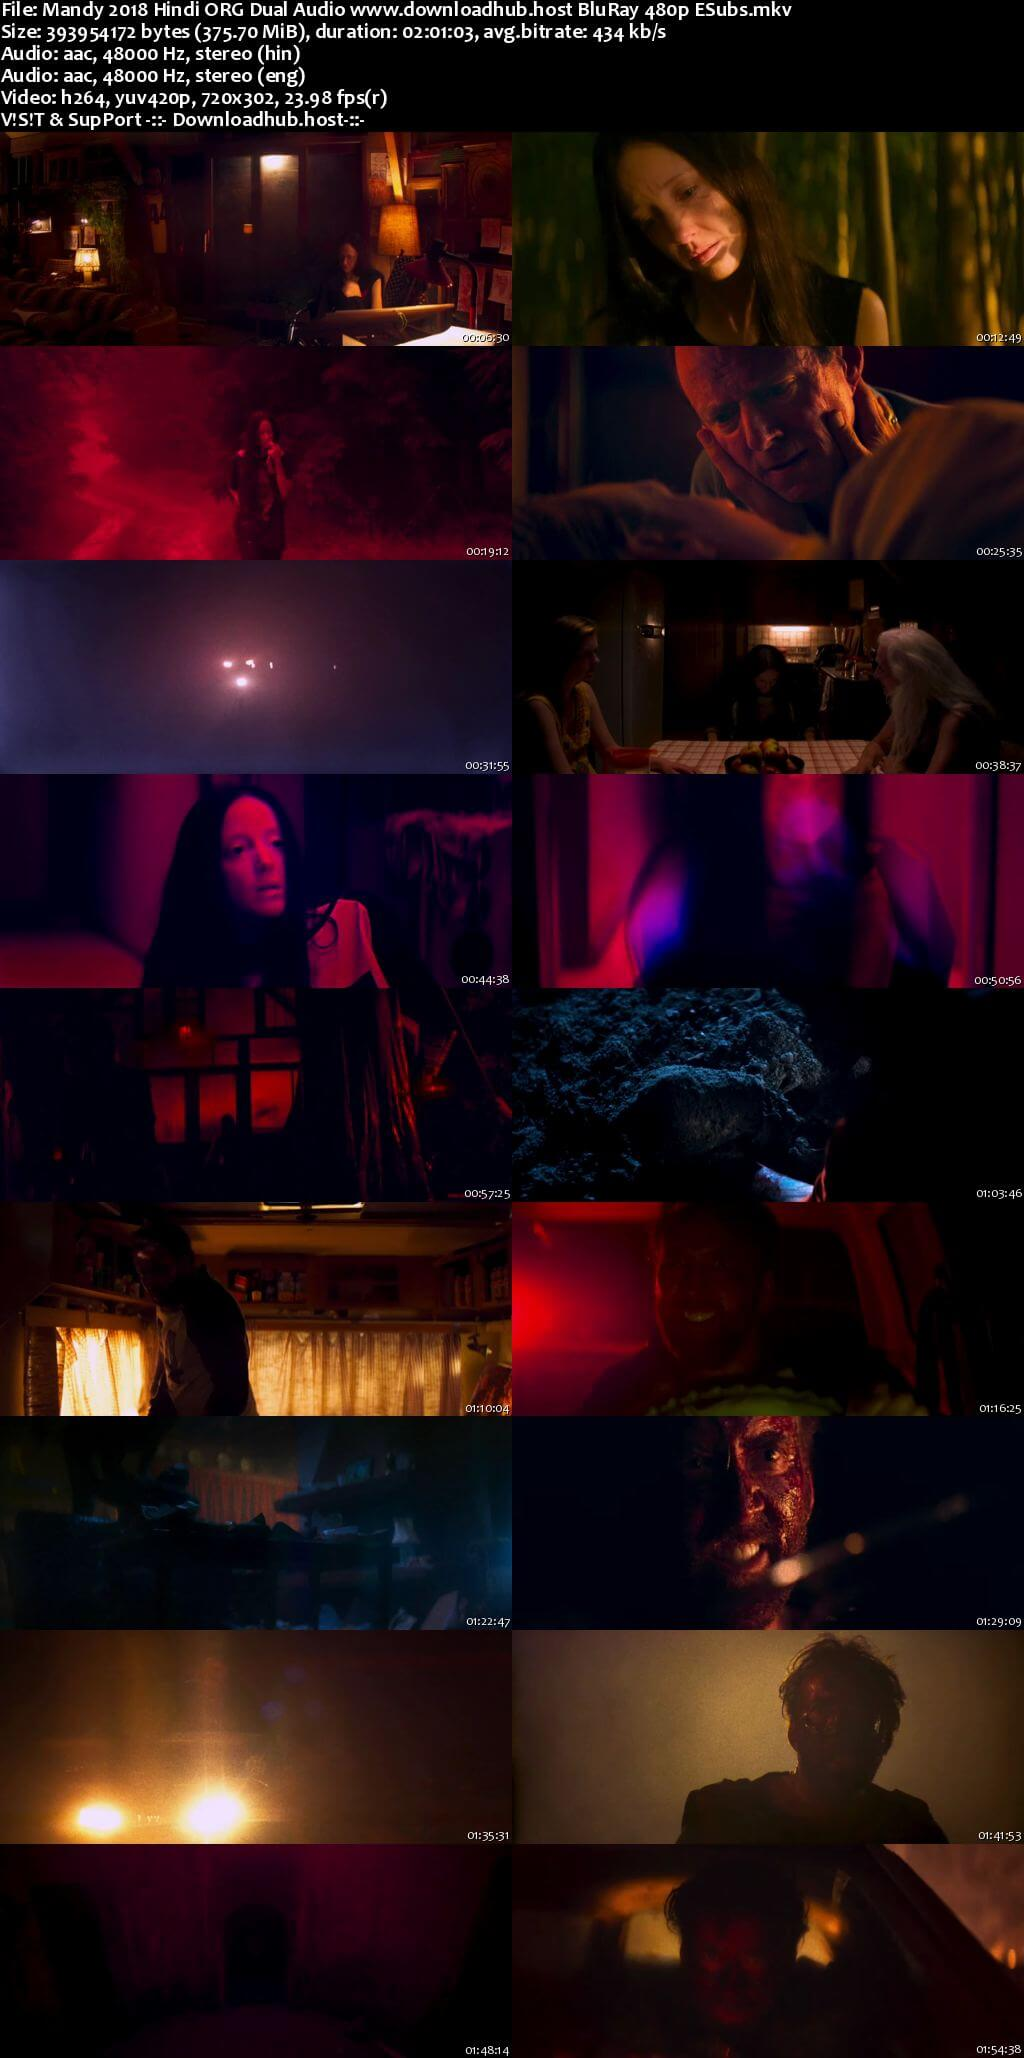 Mandy 2018 Hindi ORG Dual Audio 350MB BluRay 480p ESubs